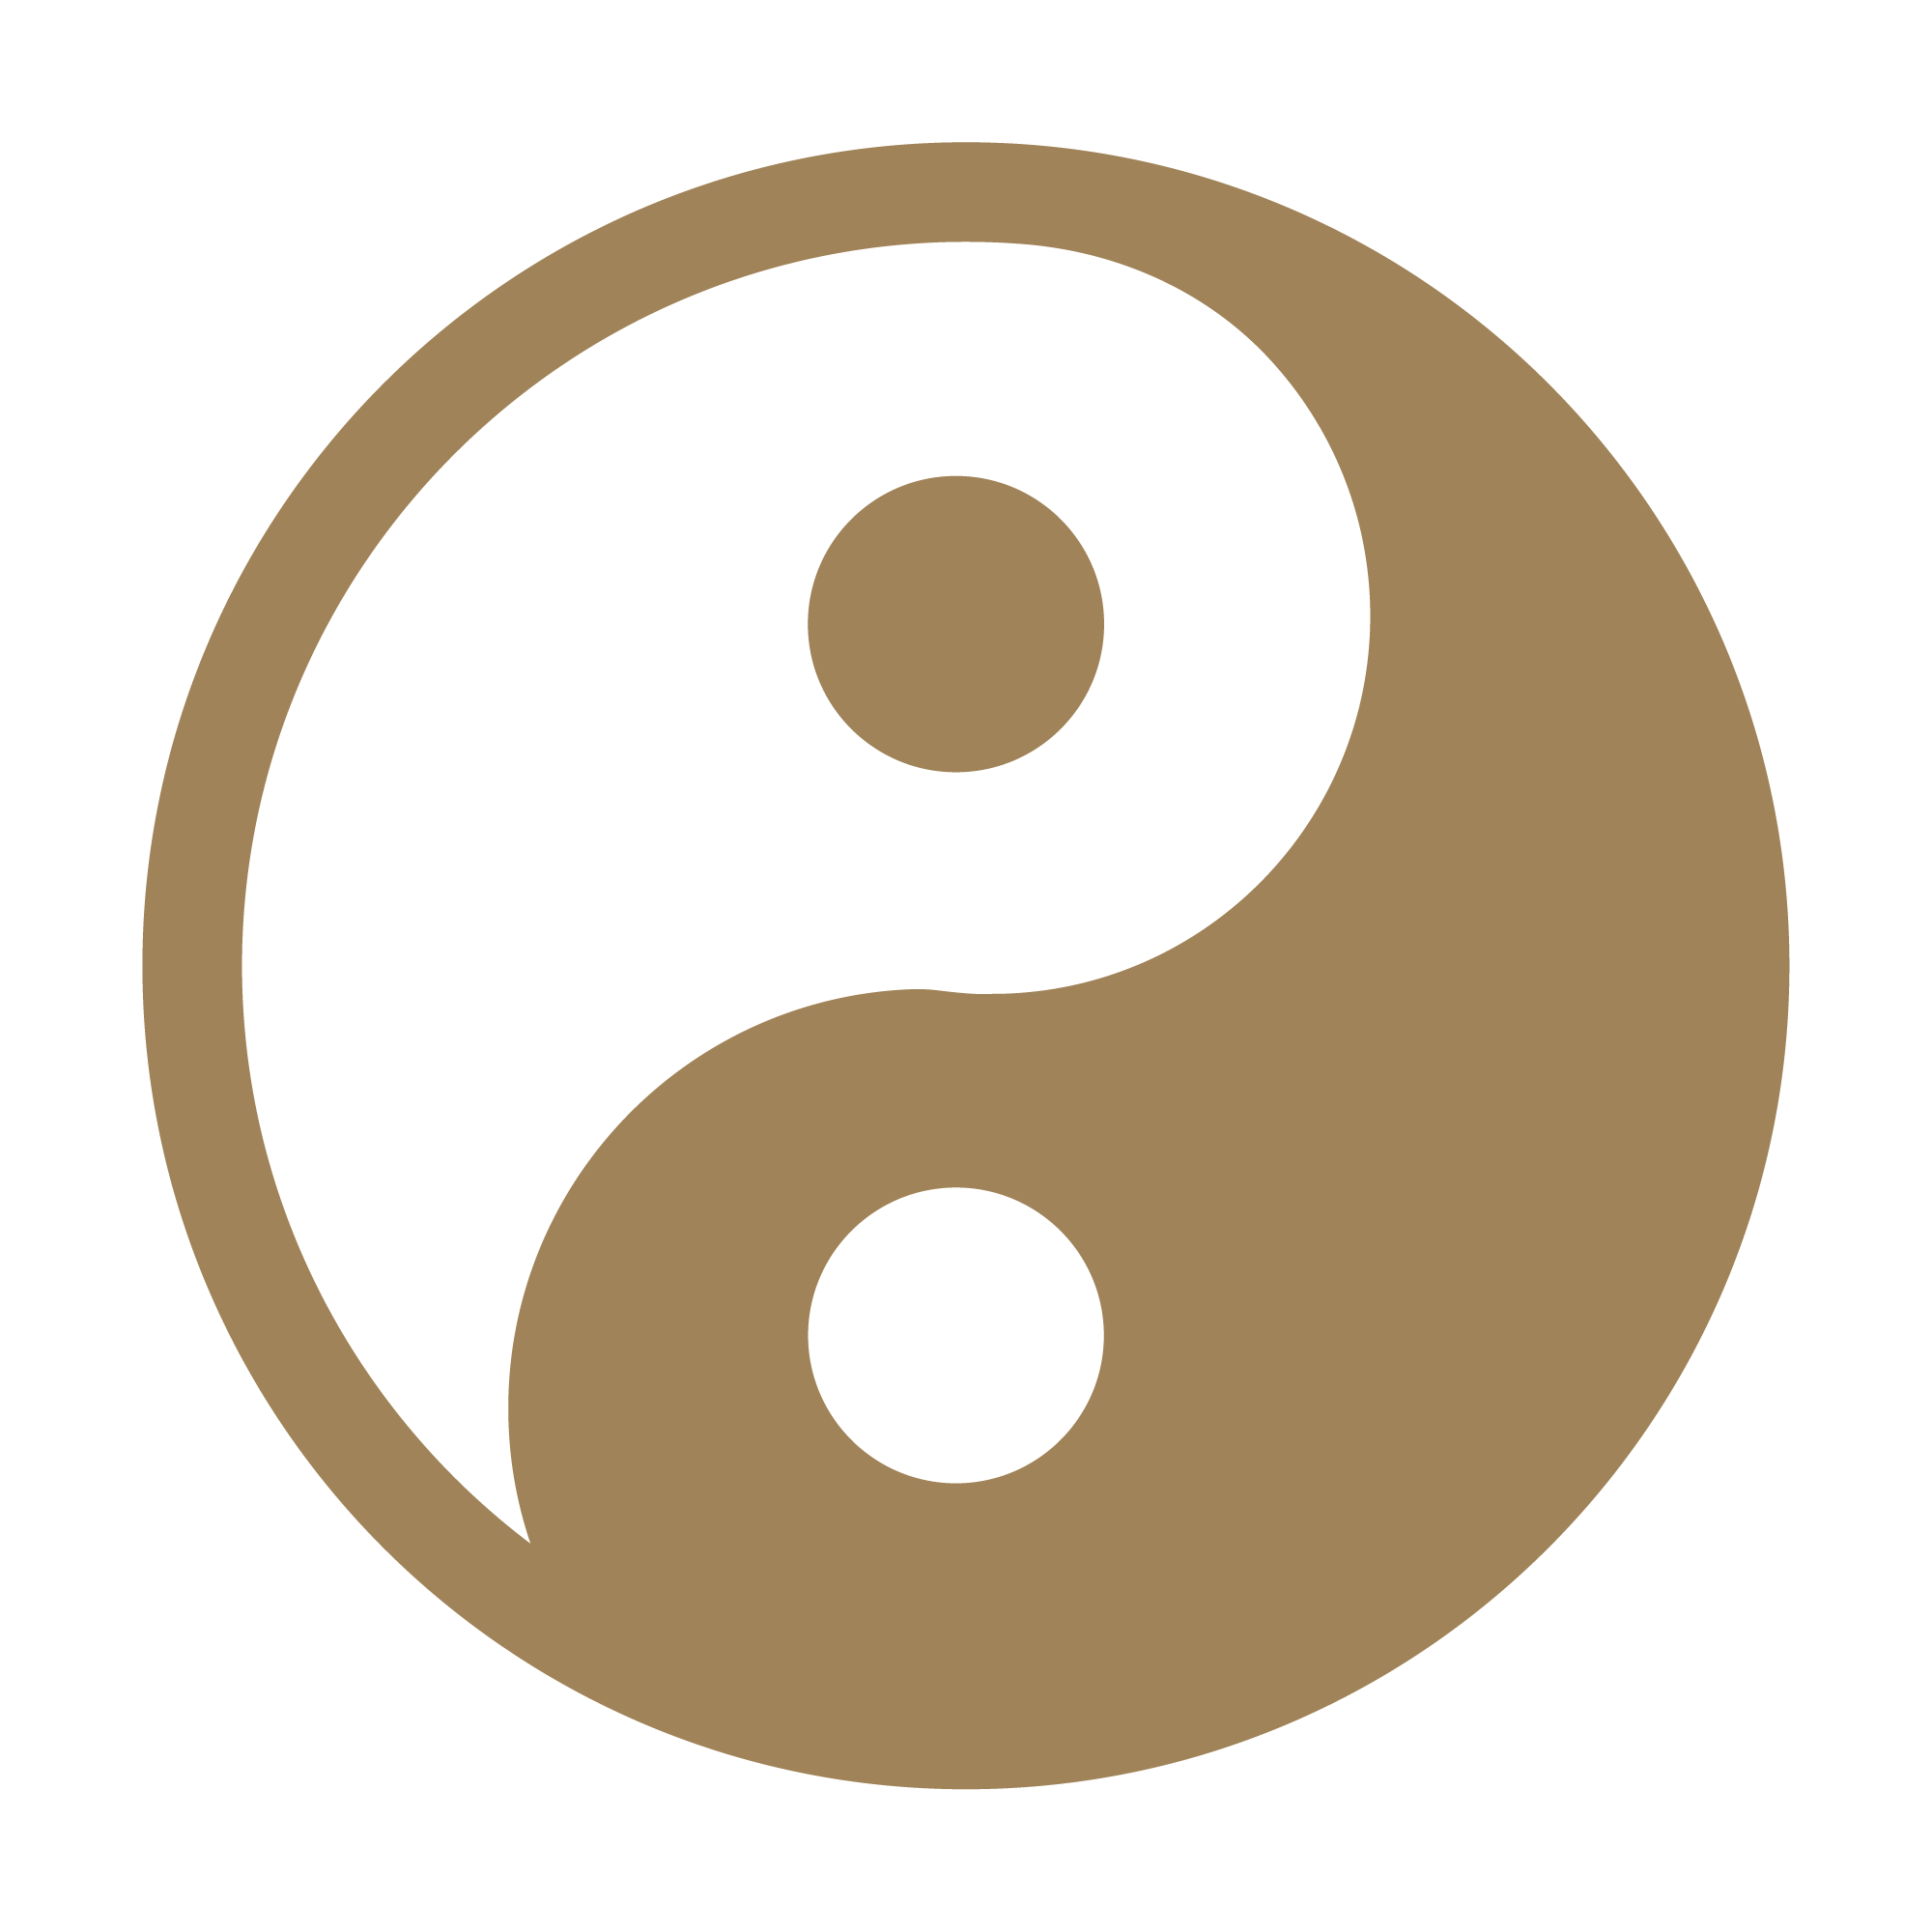 Yin Yang Icon Guided meditation for anxiety and depression, Body Scan Meditation and Relaxation